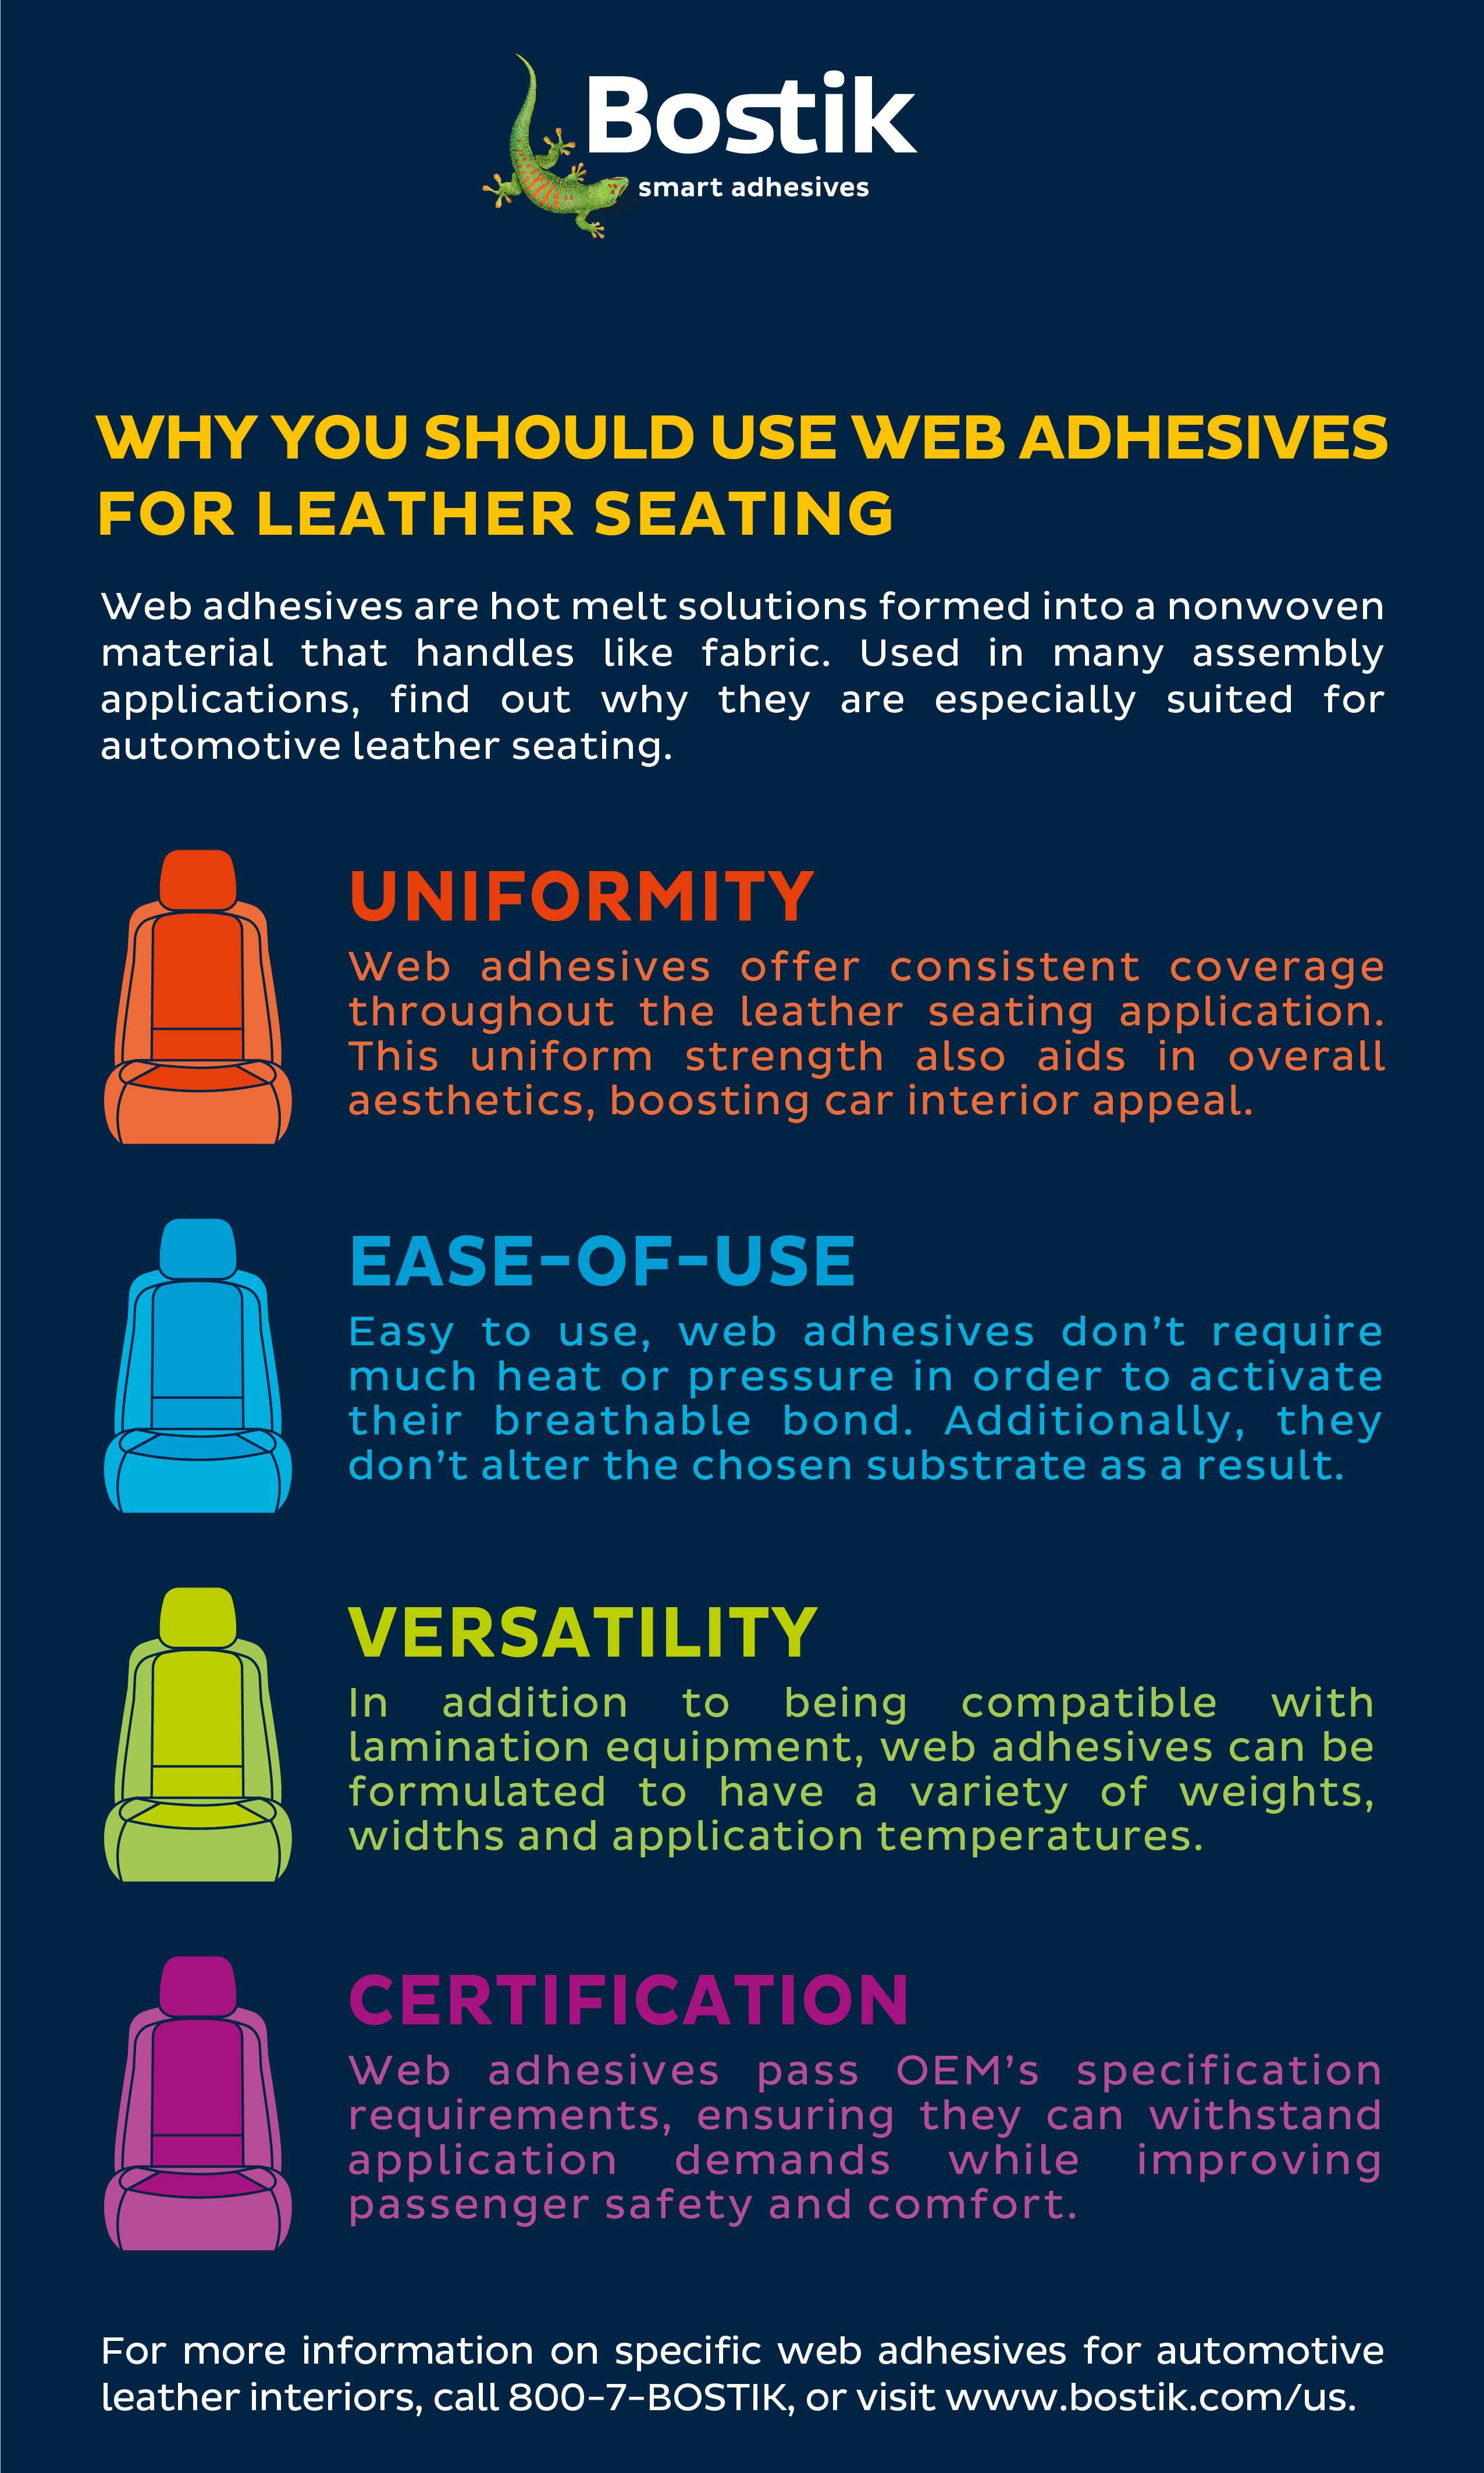 leather seating adhesives